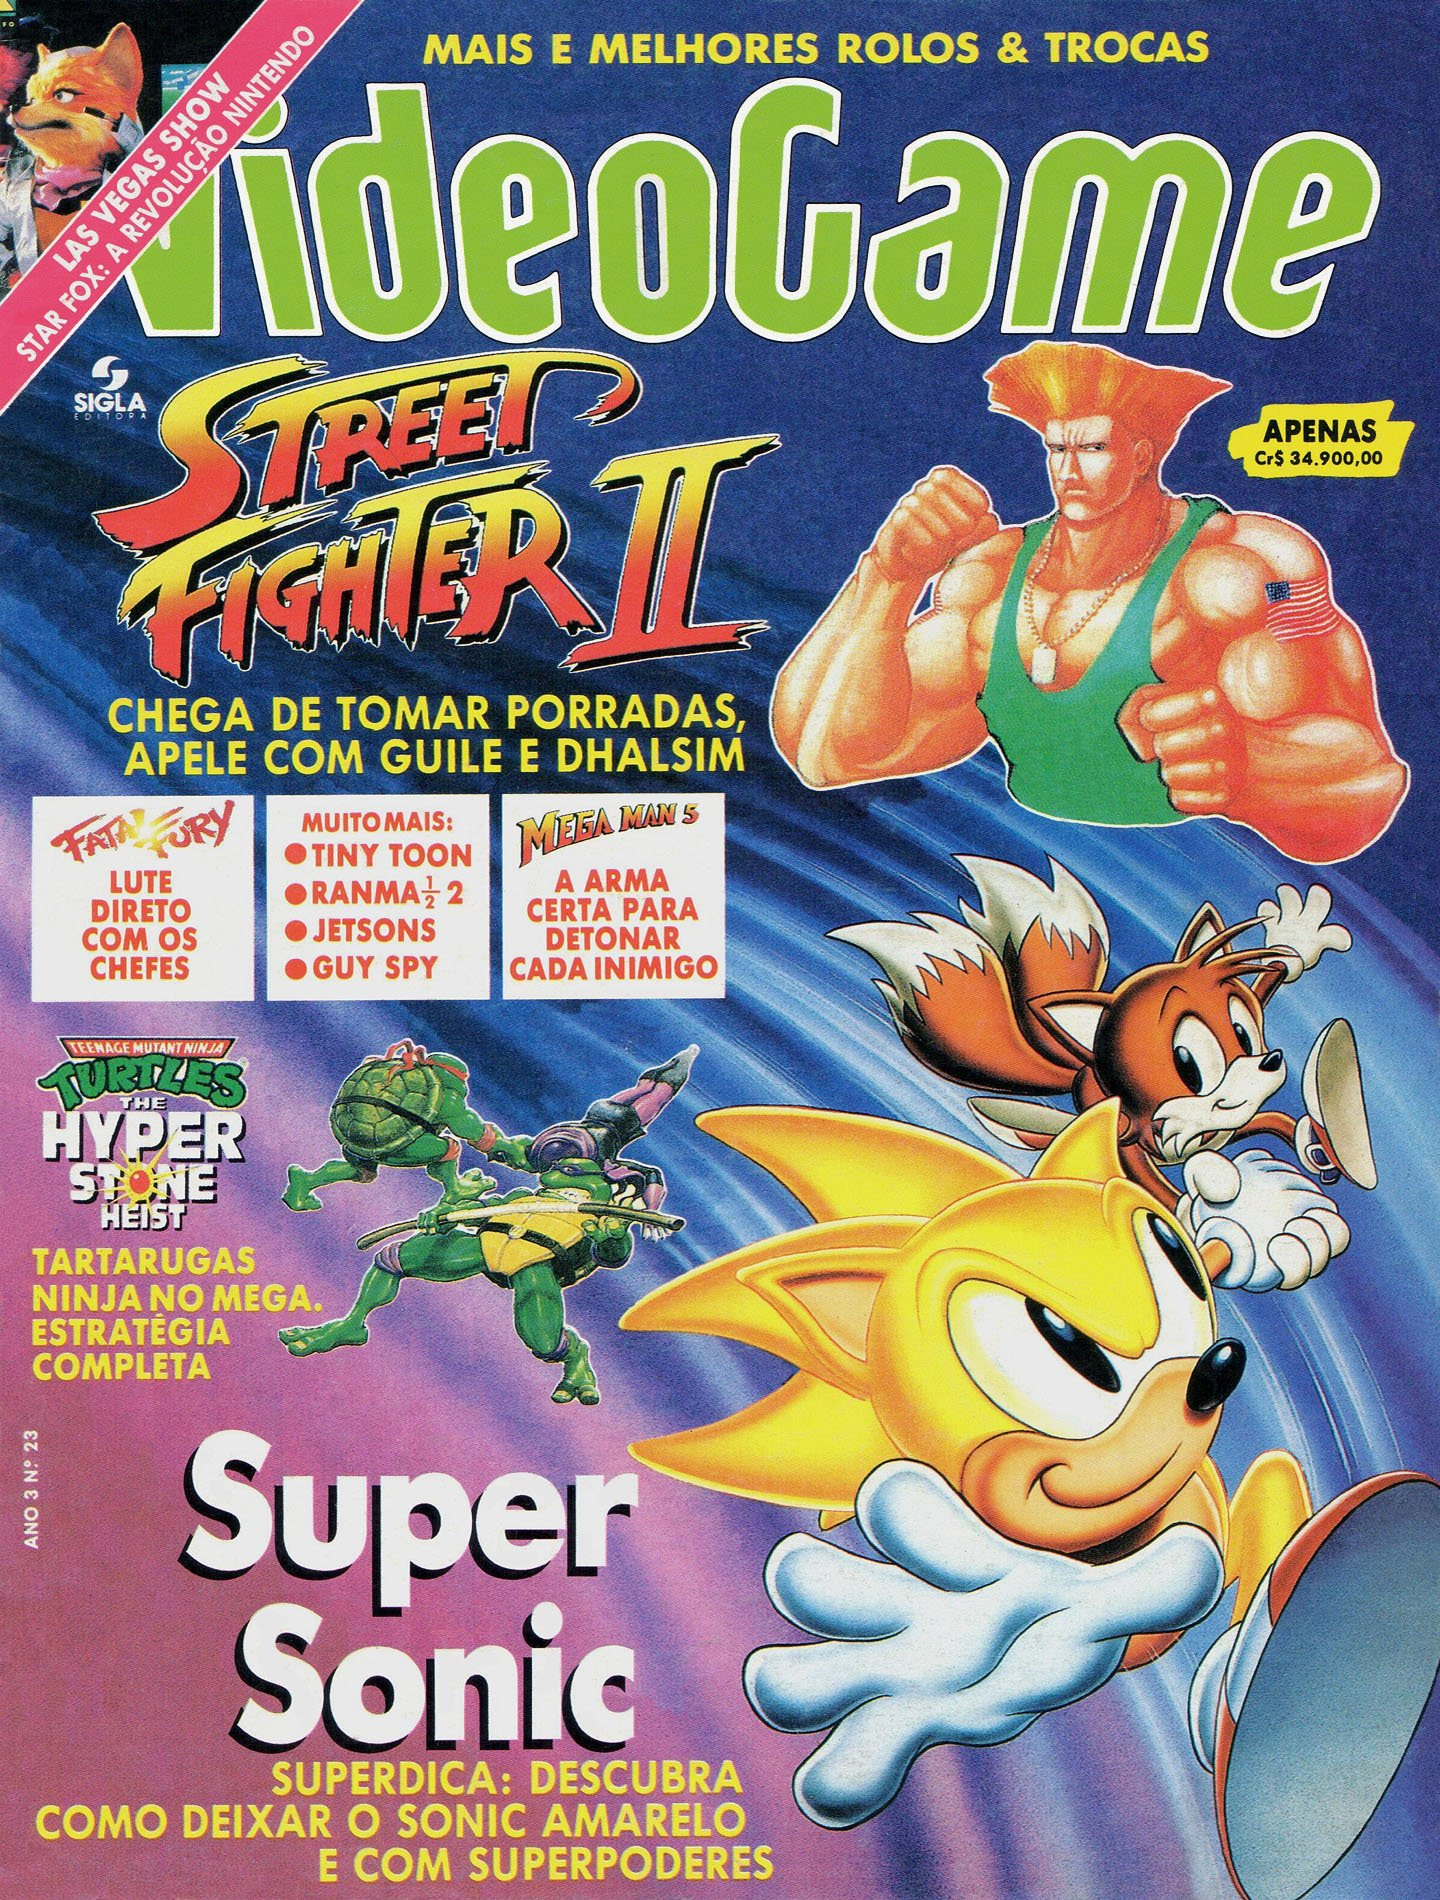 VideoGame Issue 23 (February 1993)